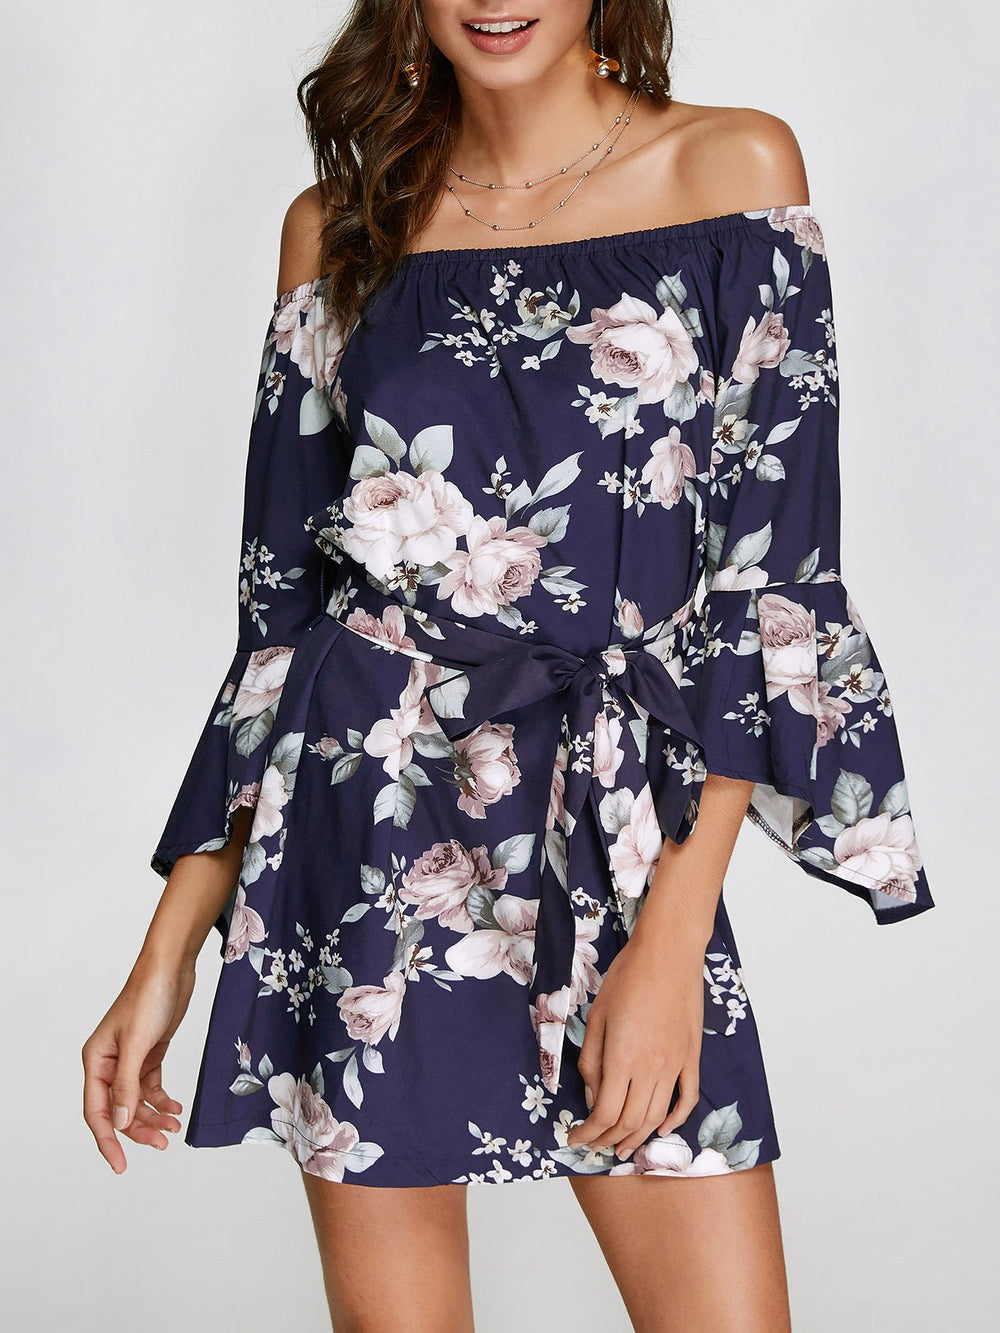 Off The Shoulder Floral Print 3/4 Length Sleeve Dresses